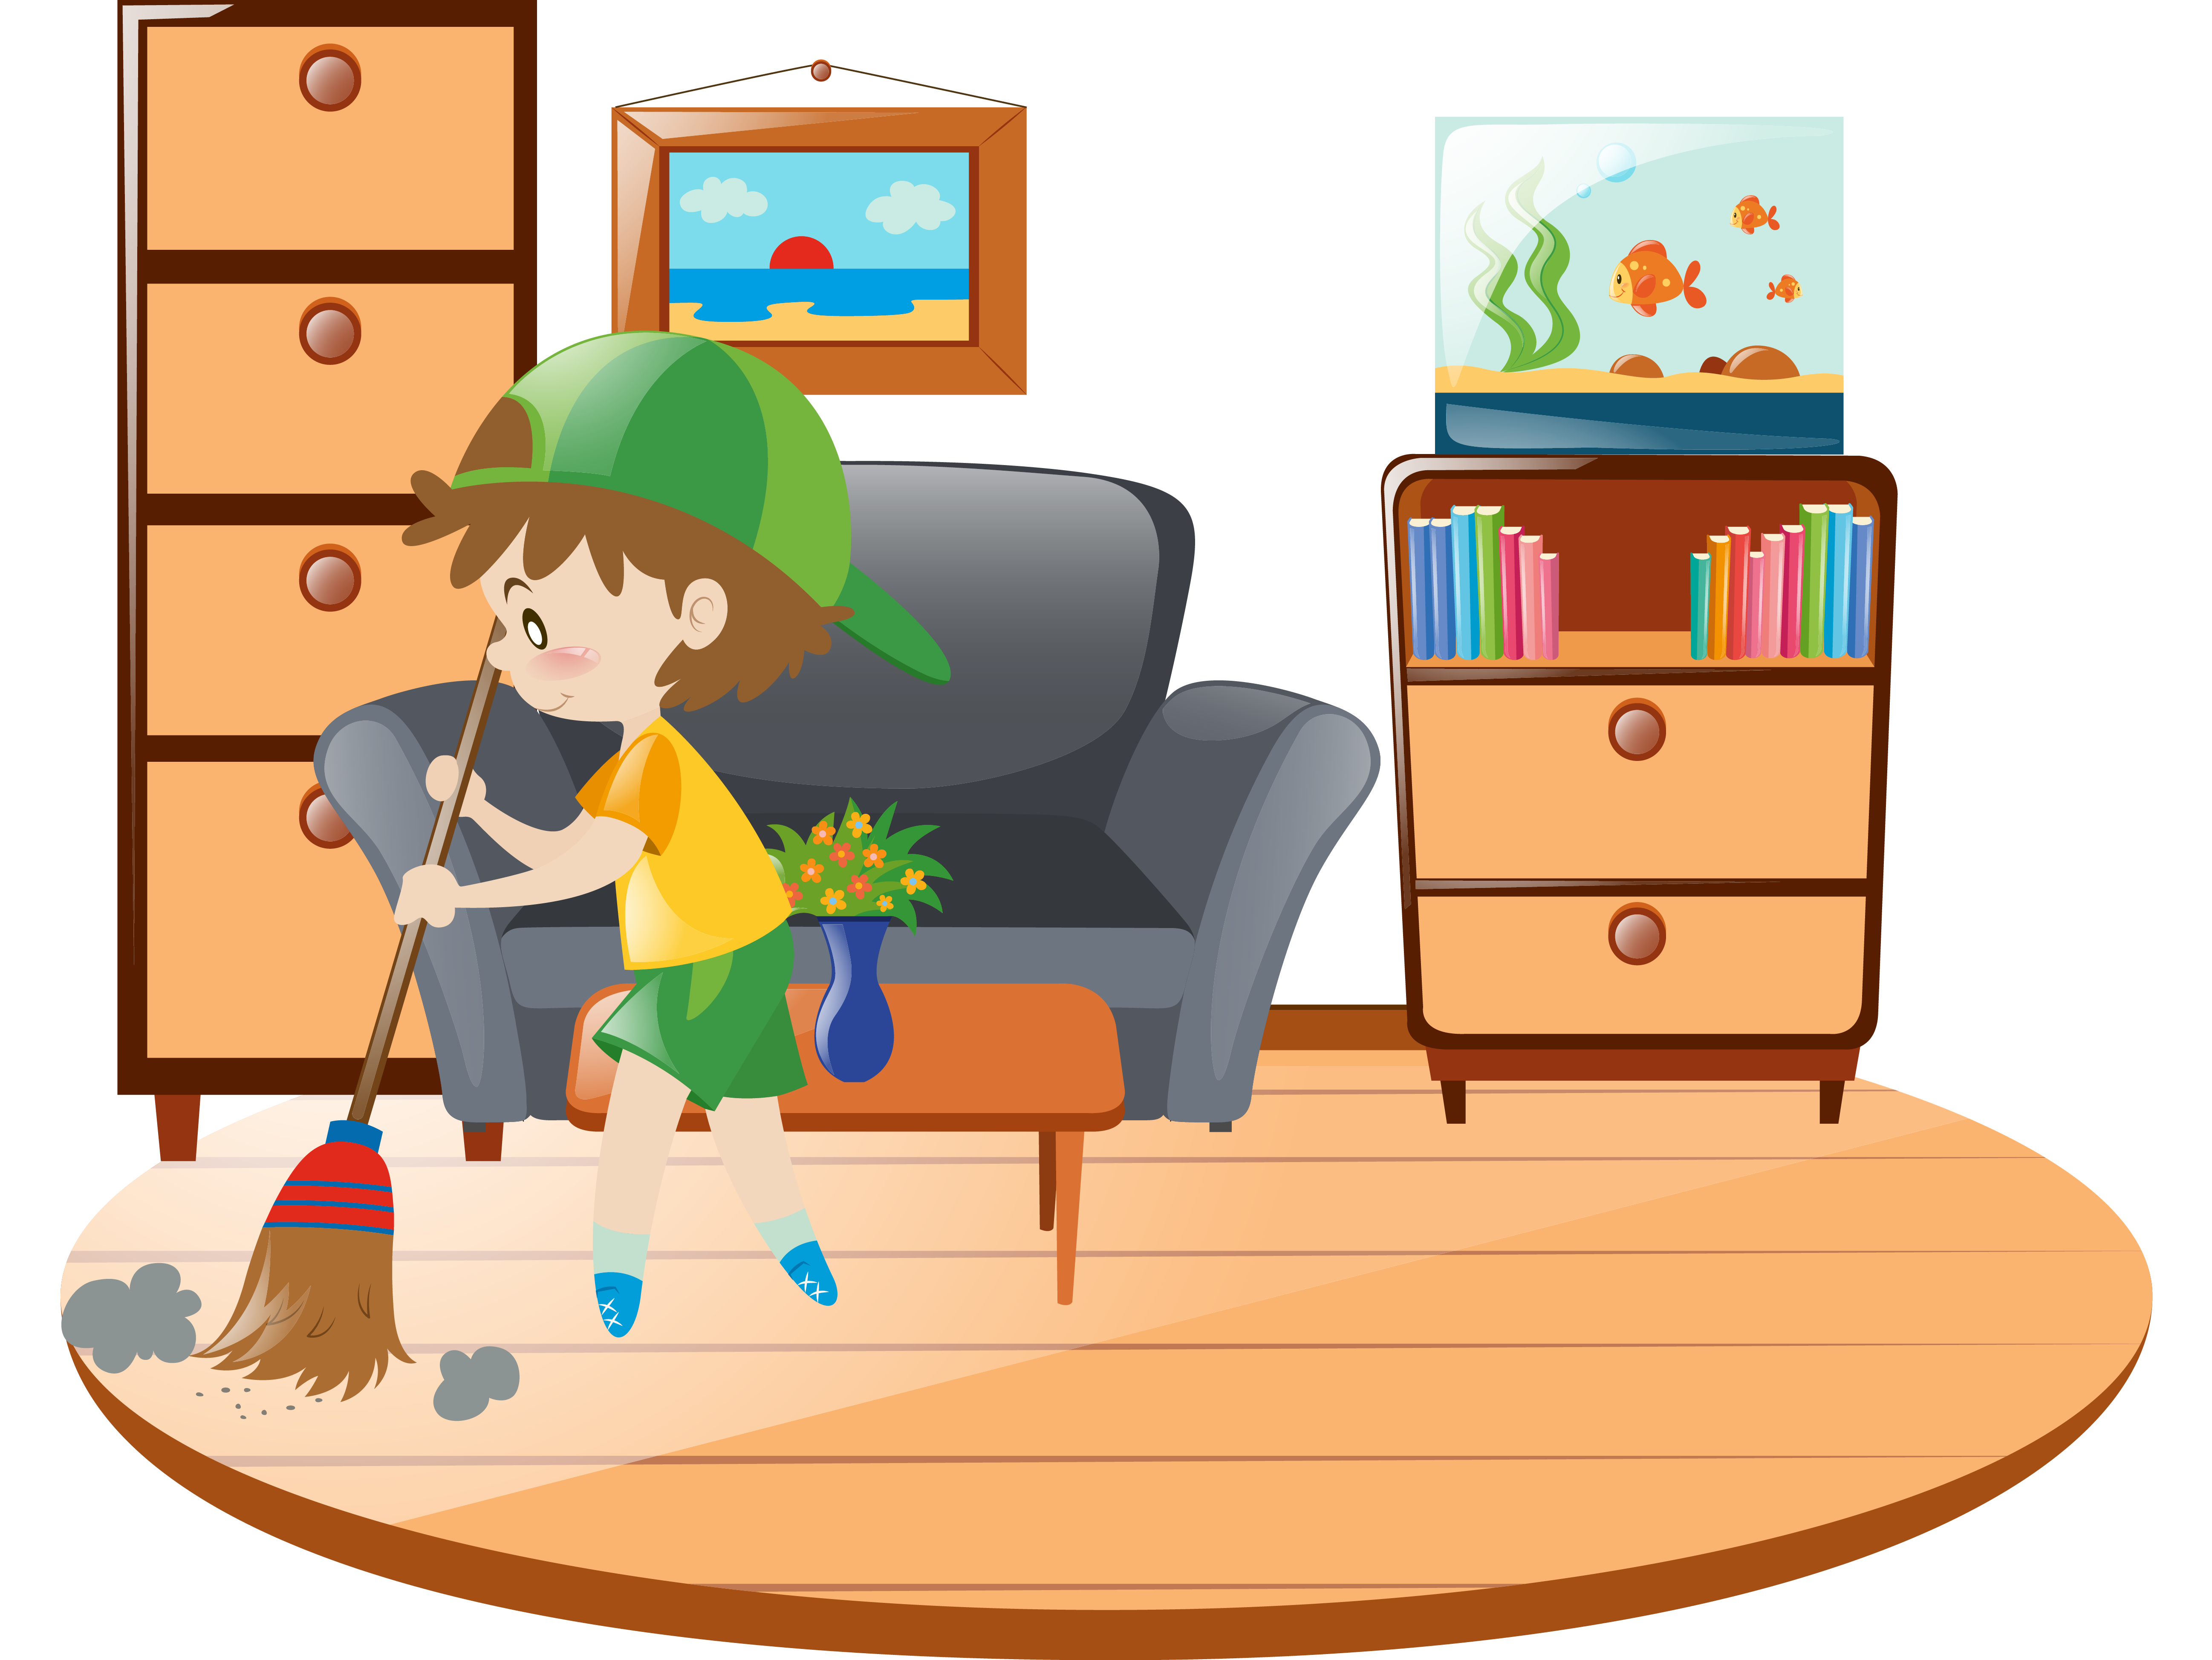 Uvc cleaning complete solution. Furniture clipart storefront